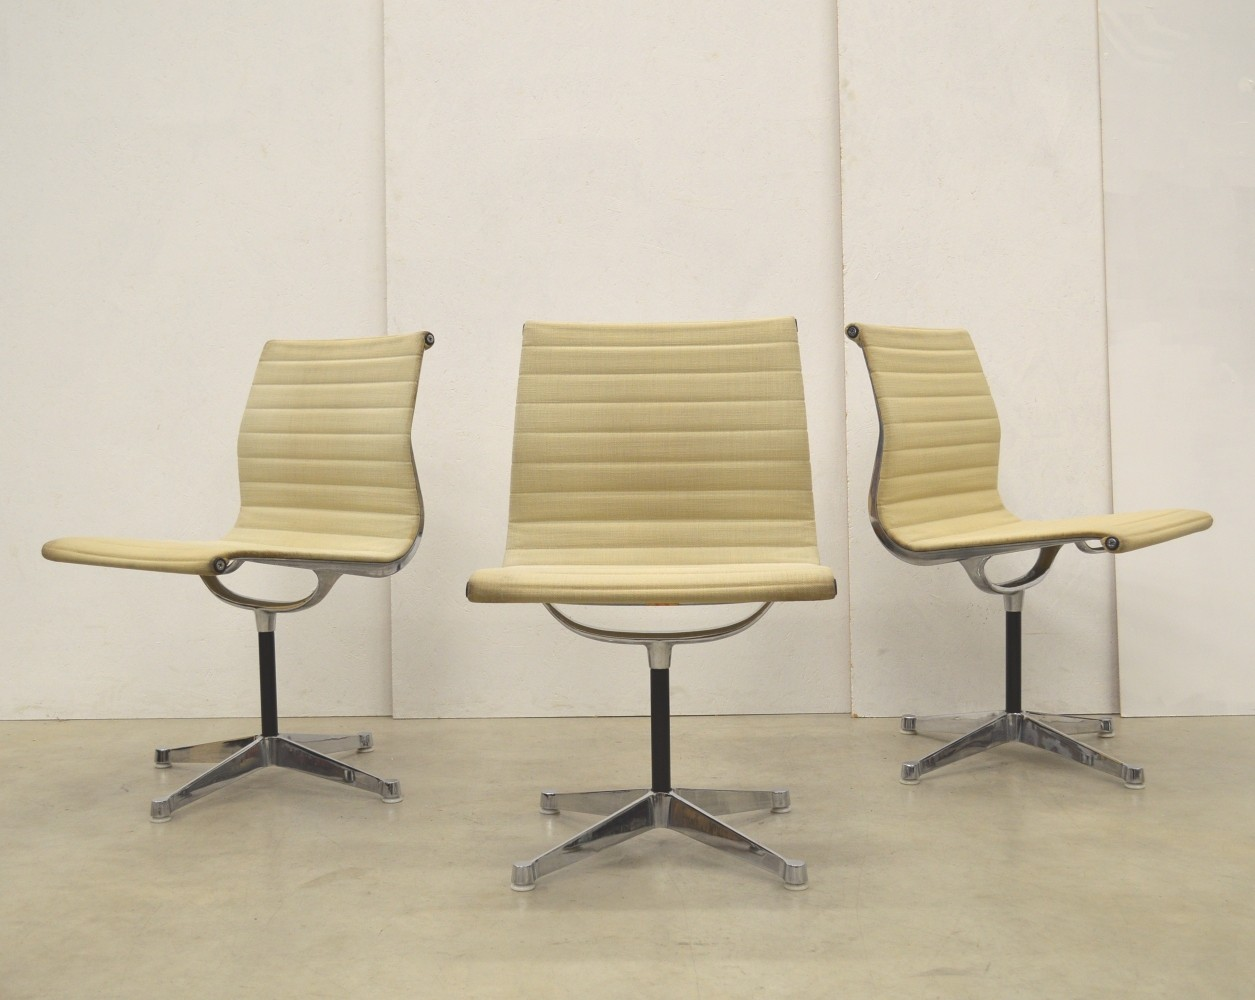 ea106 office chair by charles ray eames for herman miller 1970s. Black Bedroom Furniture Sets. Home Design Ideas